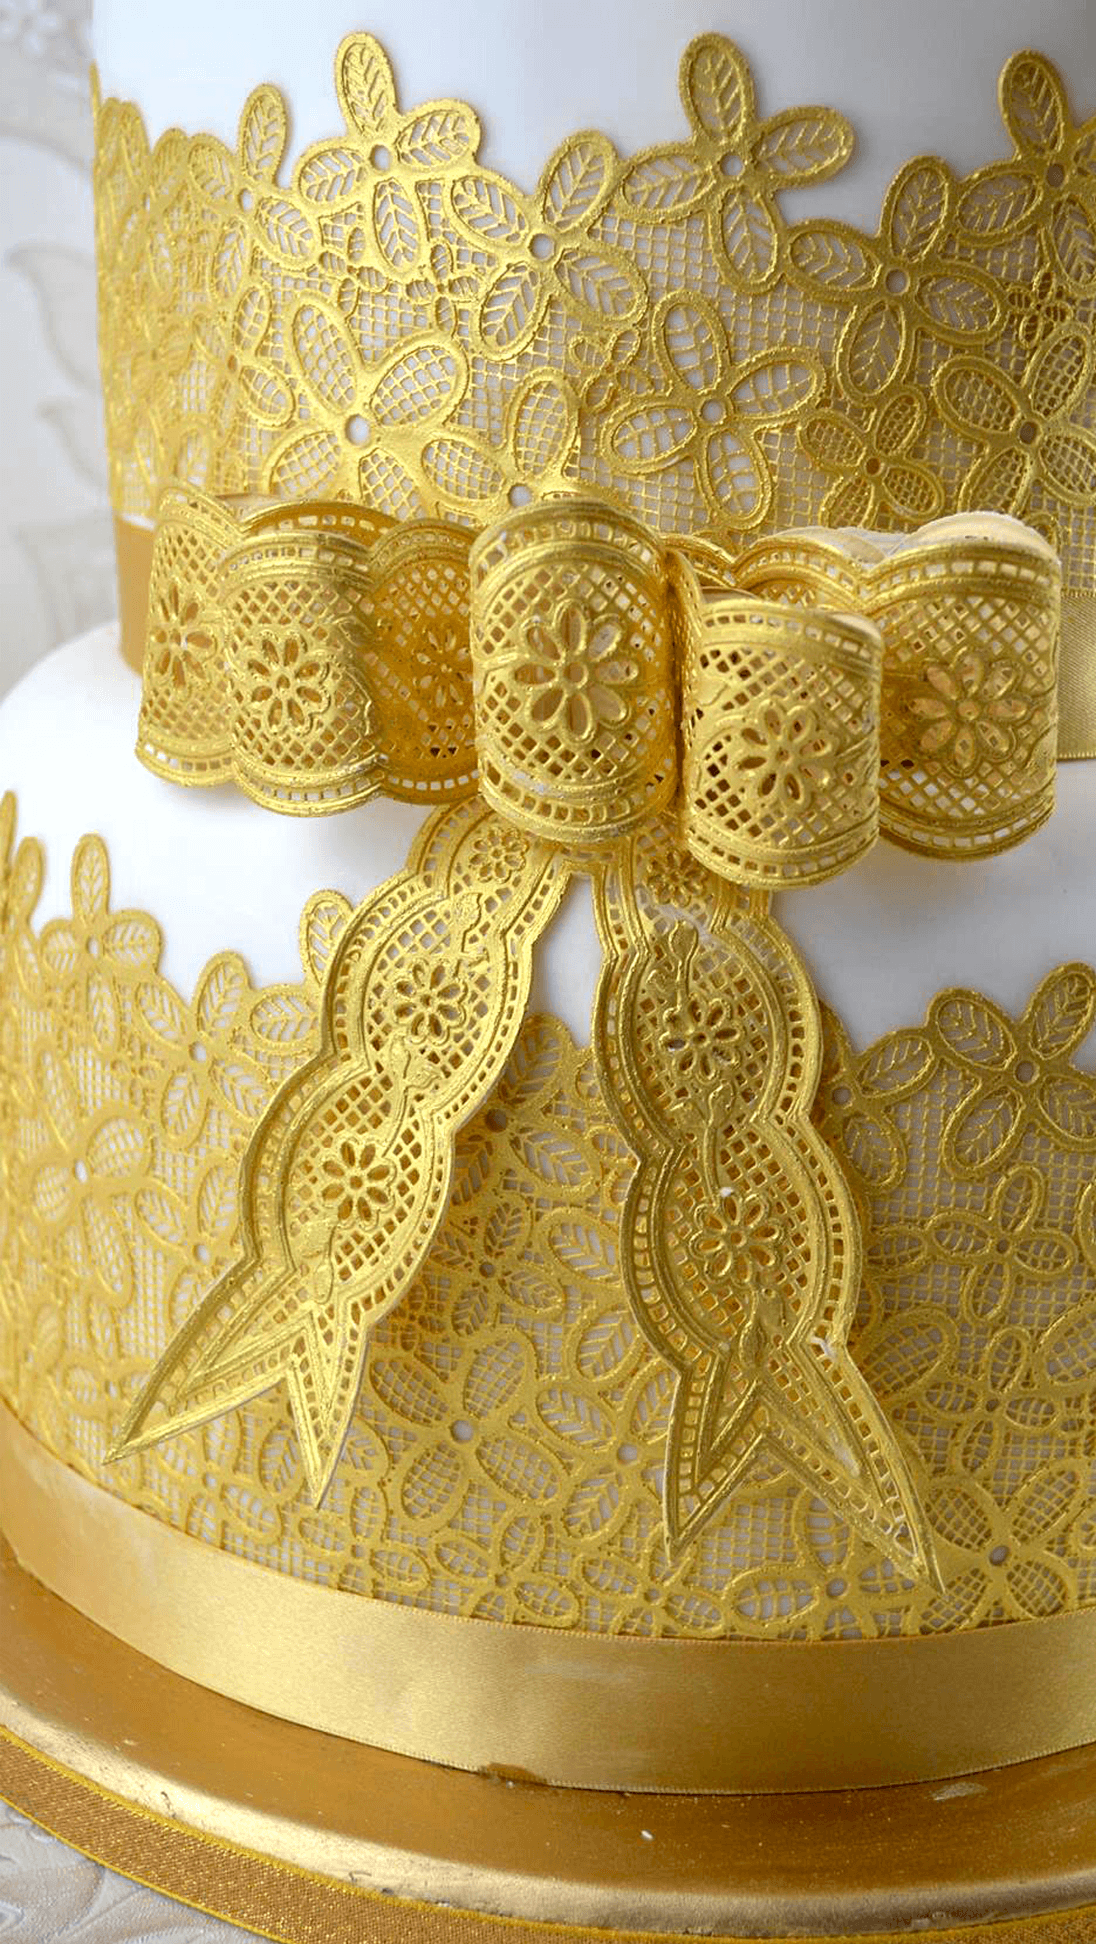 Vintage Bows Cake Lace Mat By Claire Bowman Featuring